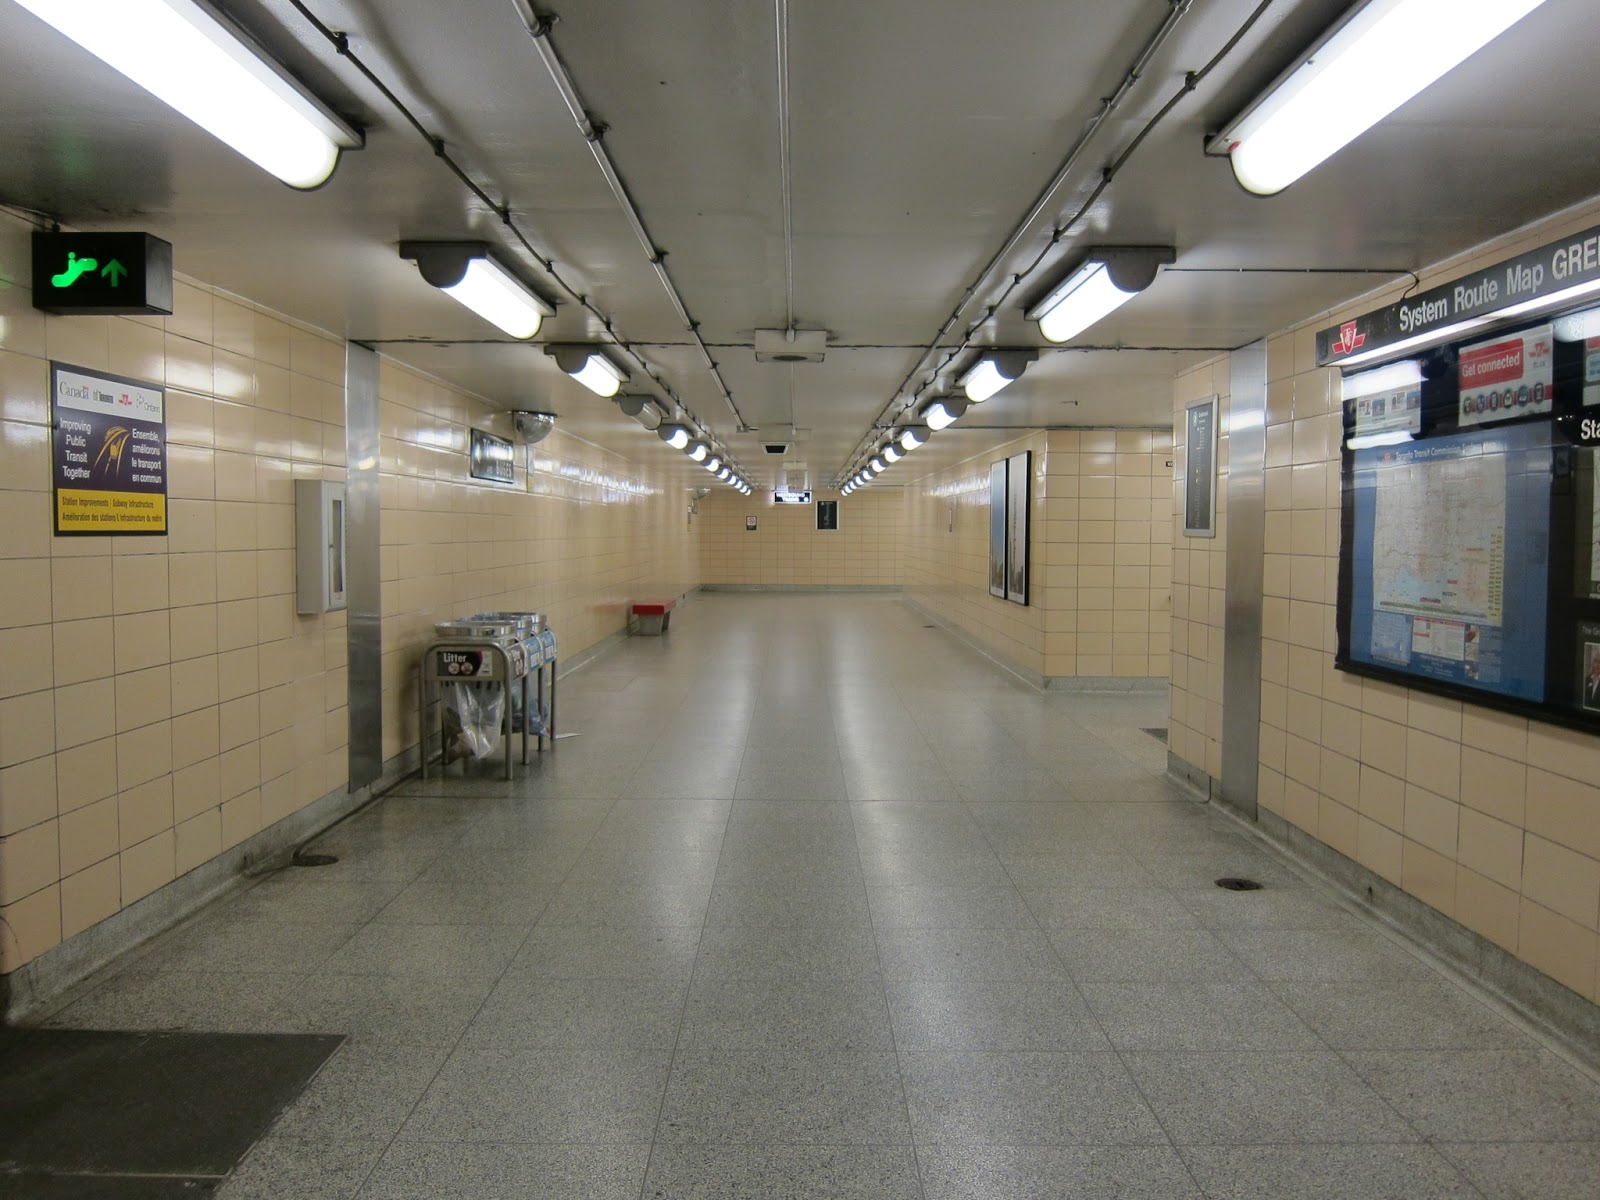 Corridor at Greenwood subway station